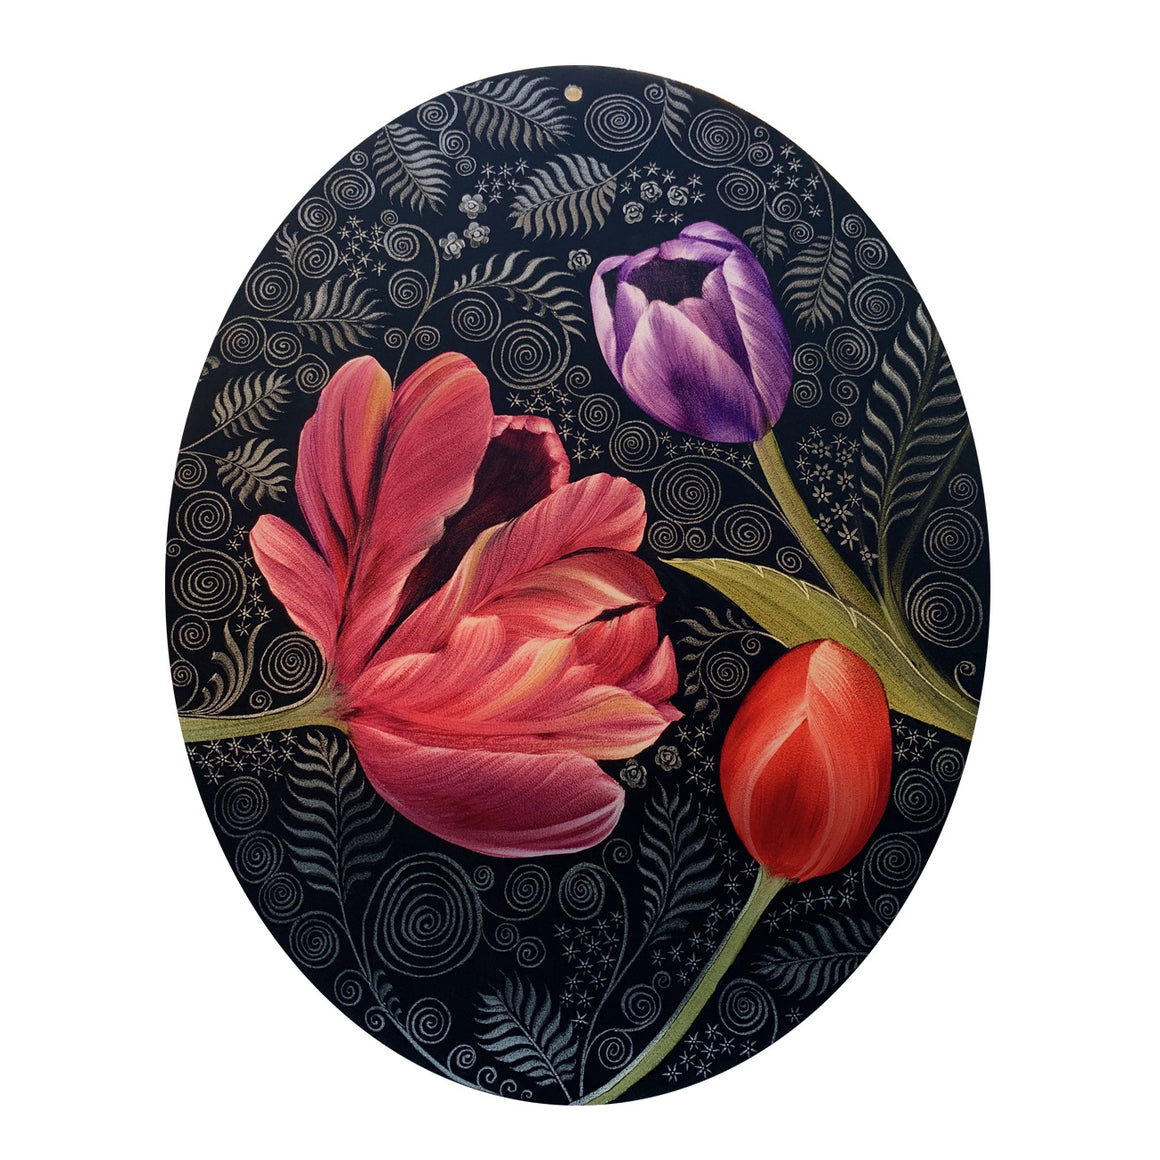 Oval 11 x 14 Tulip Window Hanging